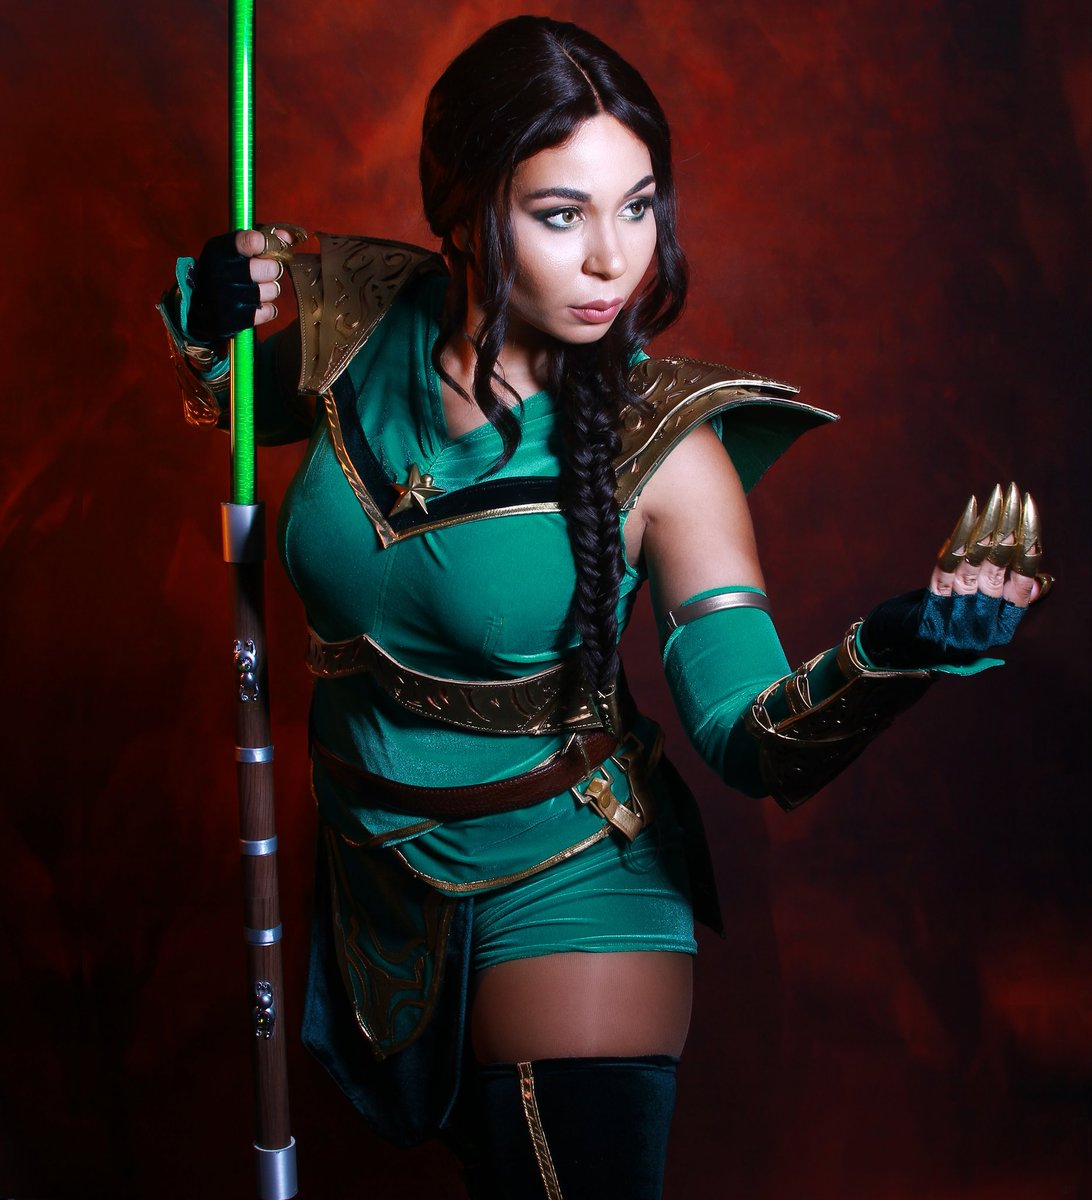 Haute Cosplay On Twitter Finished My Jade Cosplay Yesterday I